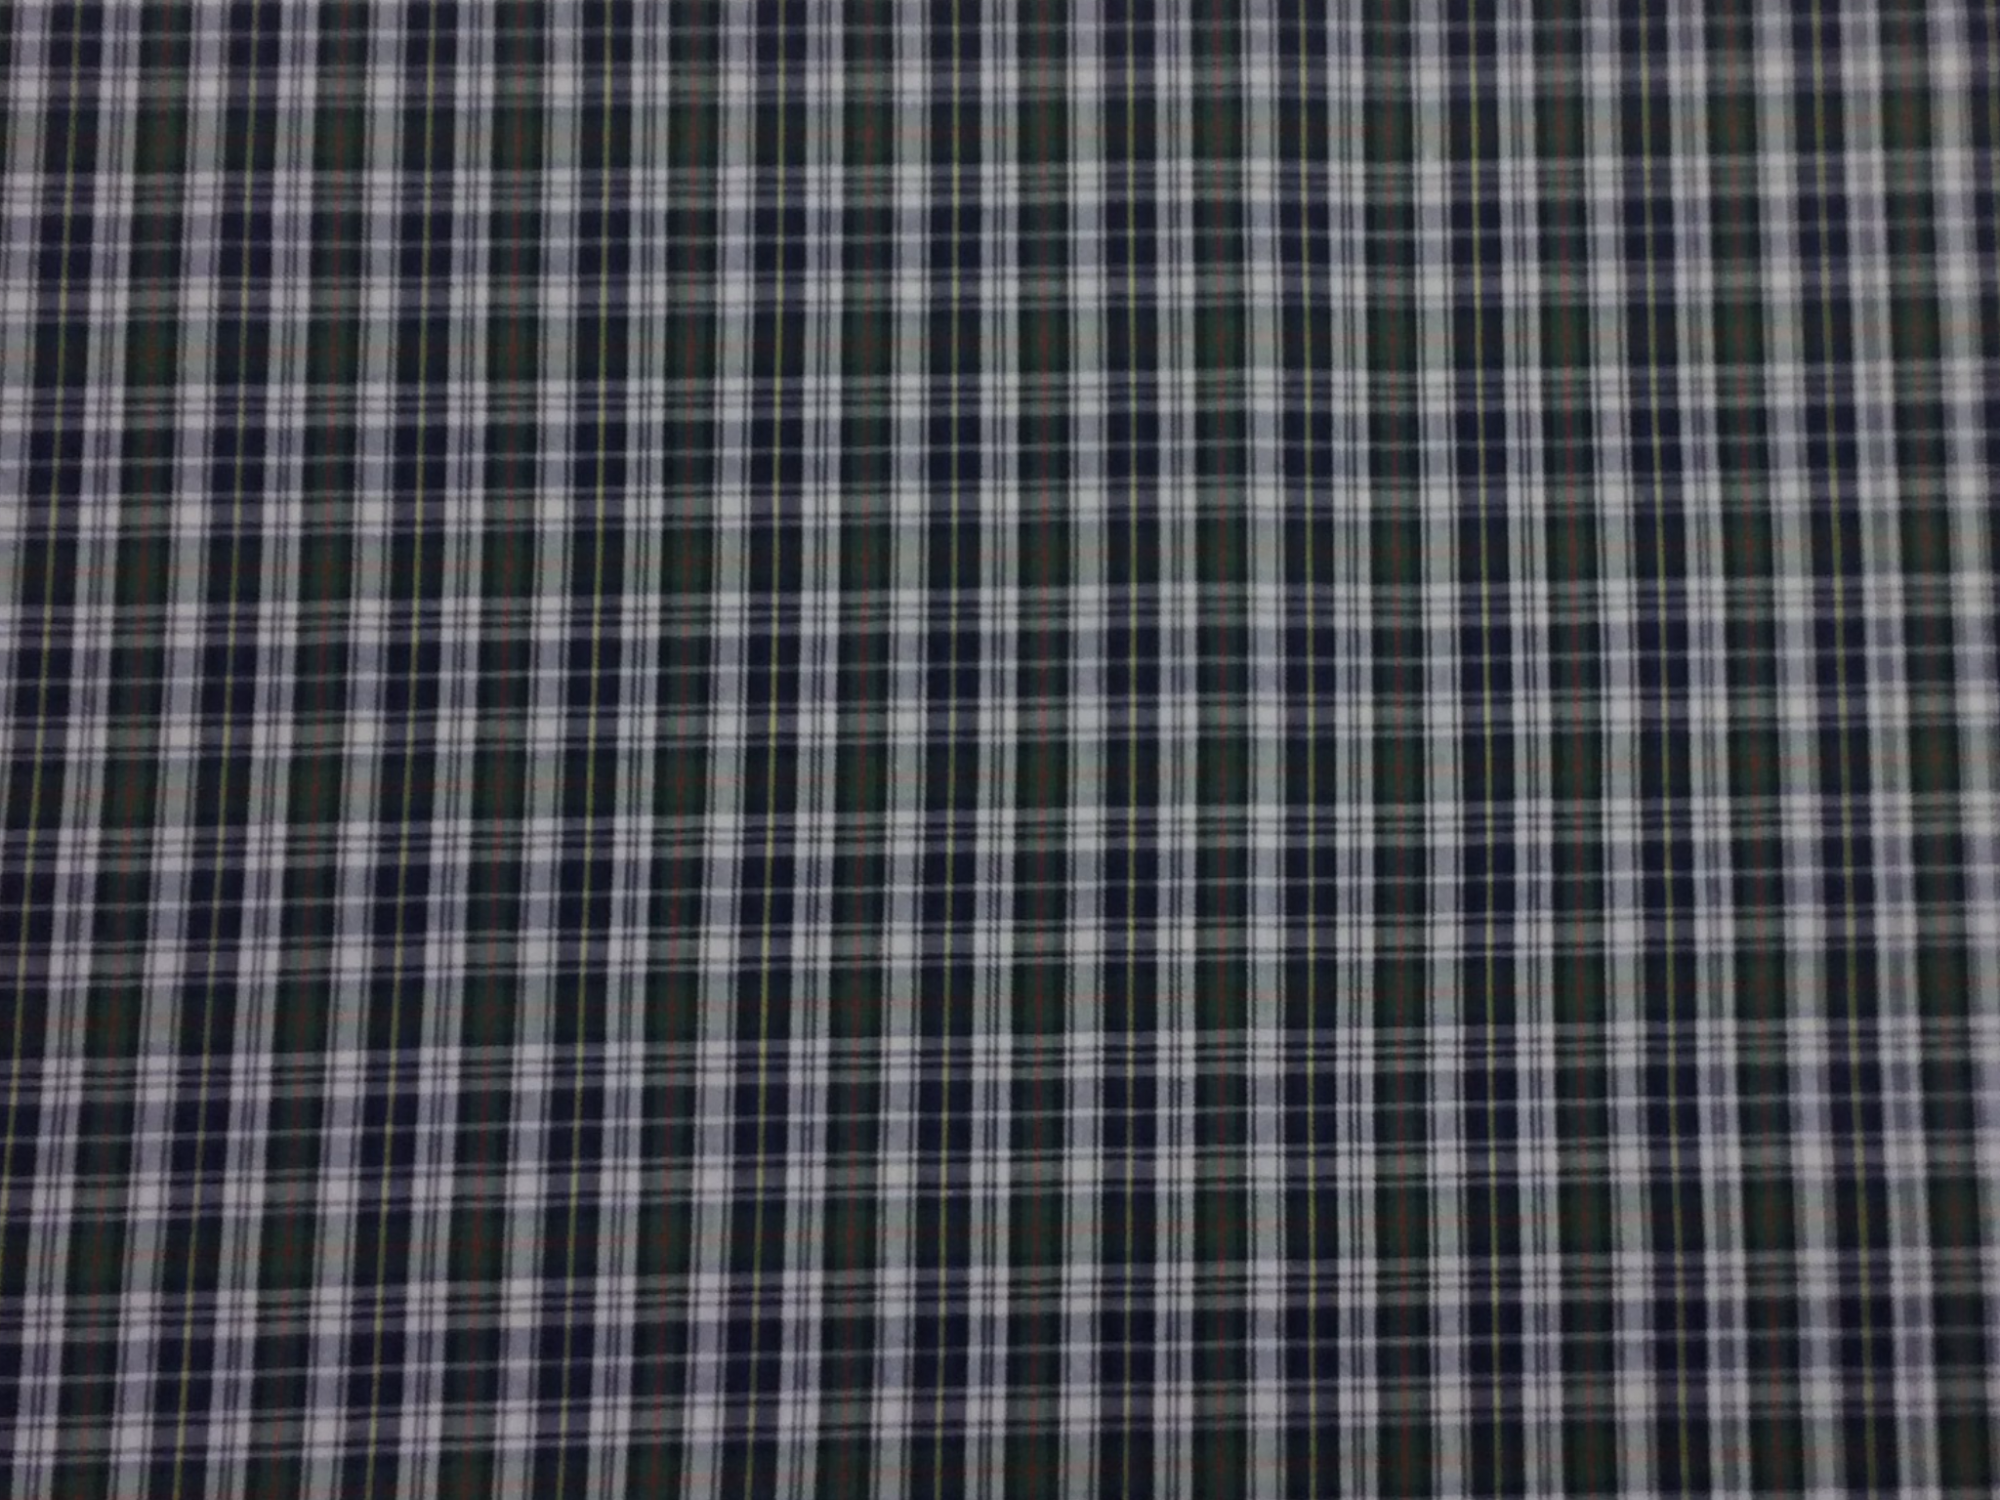 Tartan Plaid Hamilton Clan Apparel Fabric Yarn Dyed Fabric FTP08